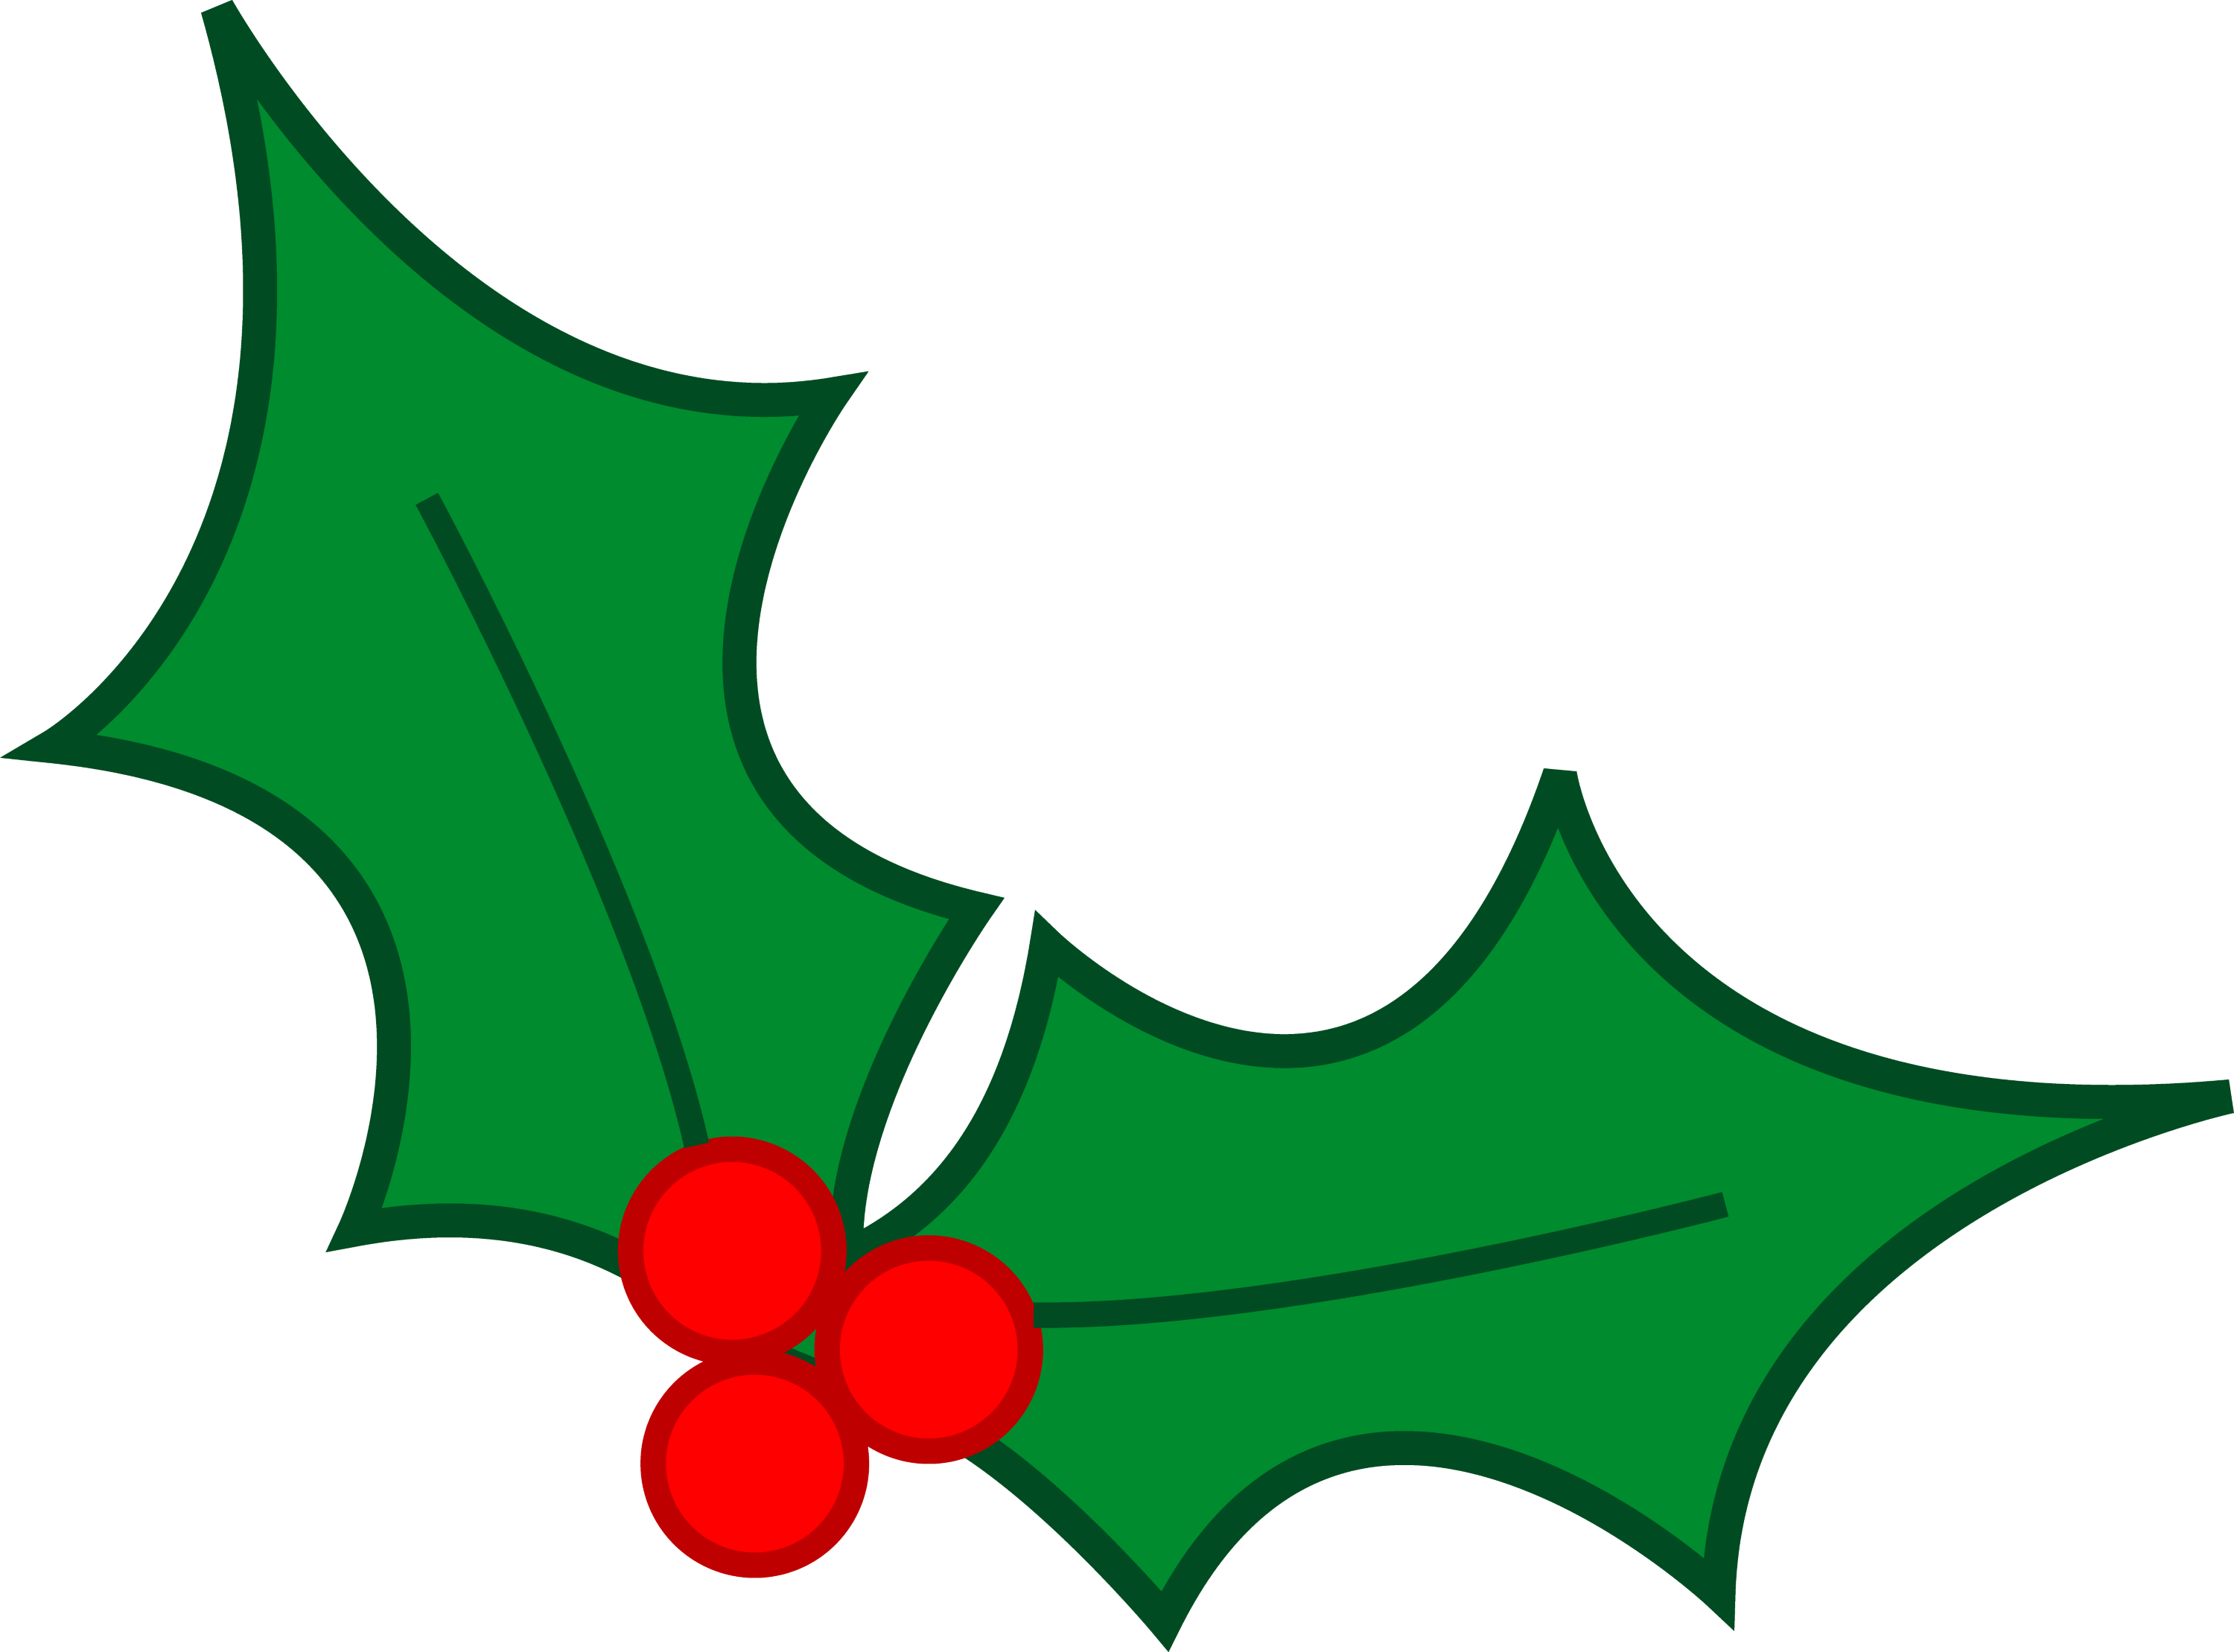 https://i2.wp.com/sweetclipart.com/multisite/sweetclipart/files/holidays_christmas_holly_1.png